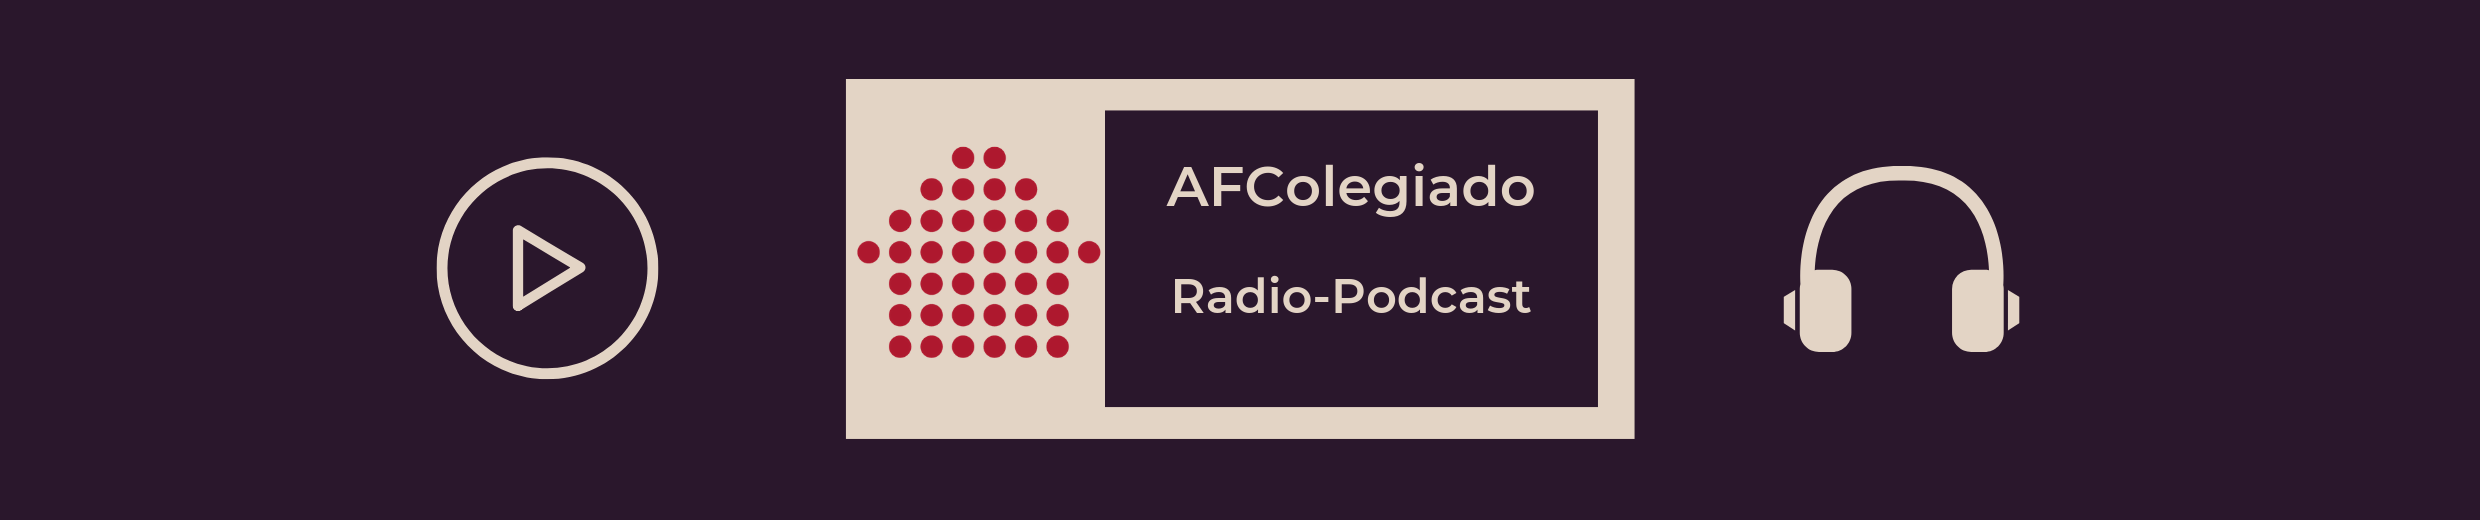 AFColegiado Radio-Podcast